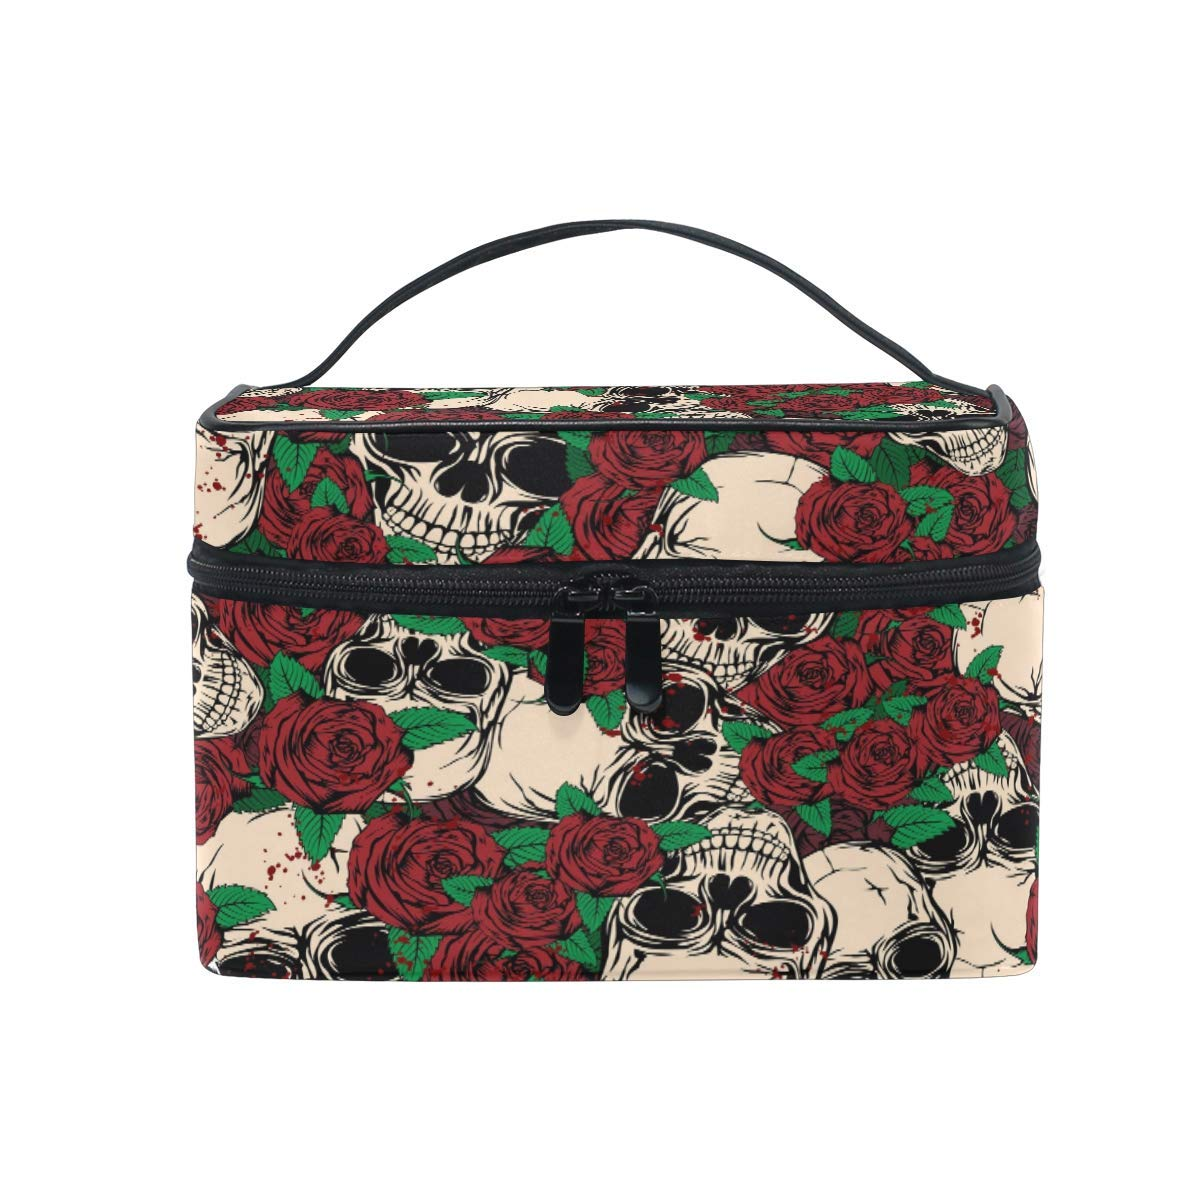 Makeup Bag, Flower Rose Sugar Skull Portable Travel Case Large Print Cosmetic Bag Organizer Compartments for Girls Women Lady